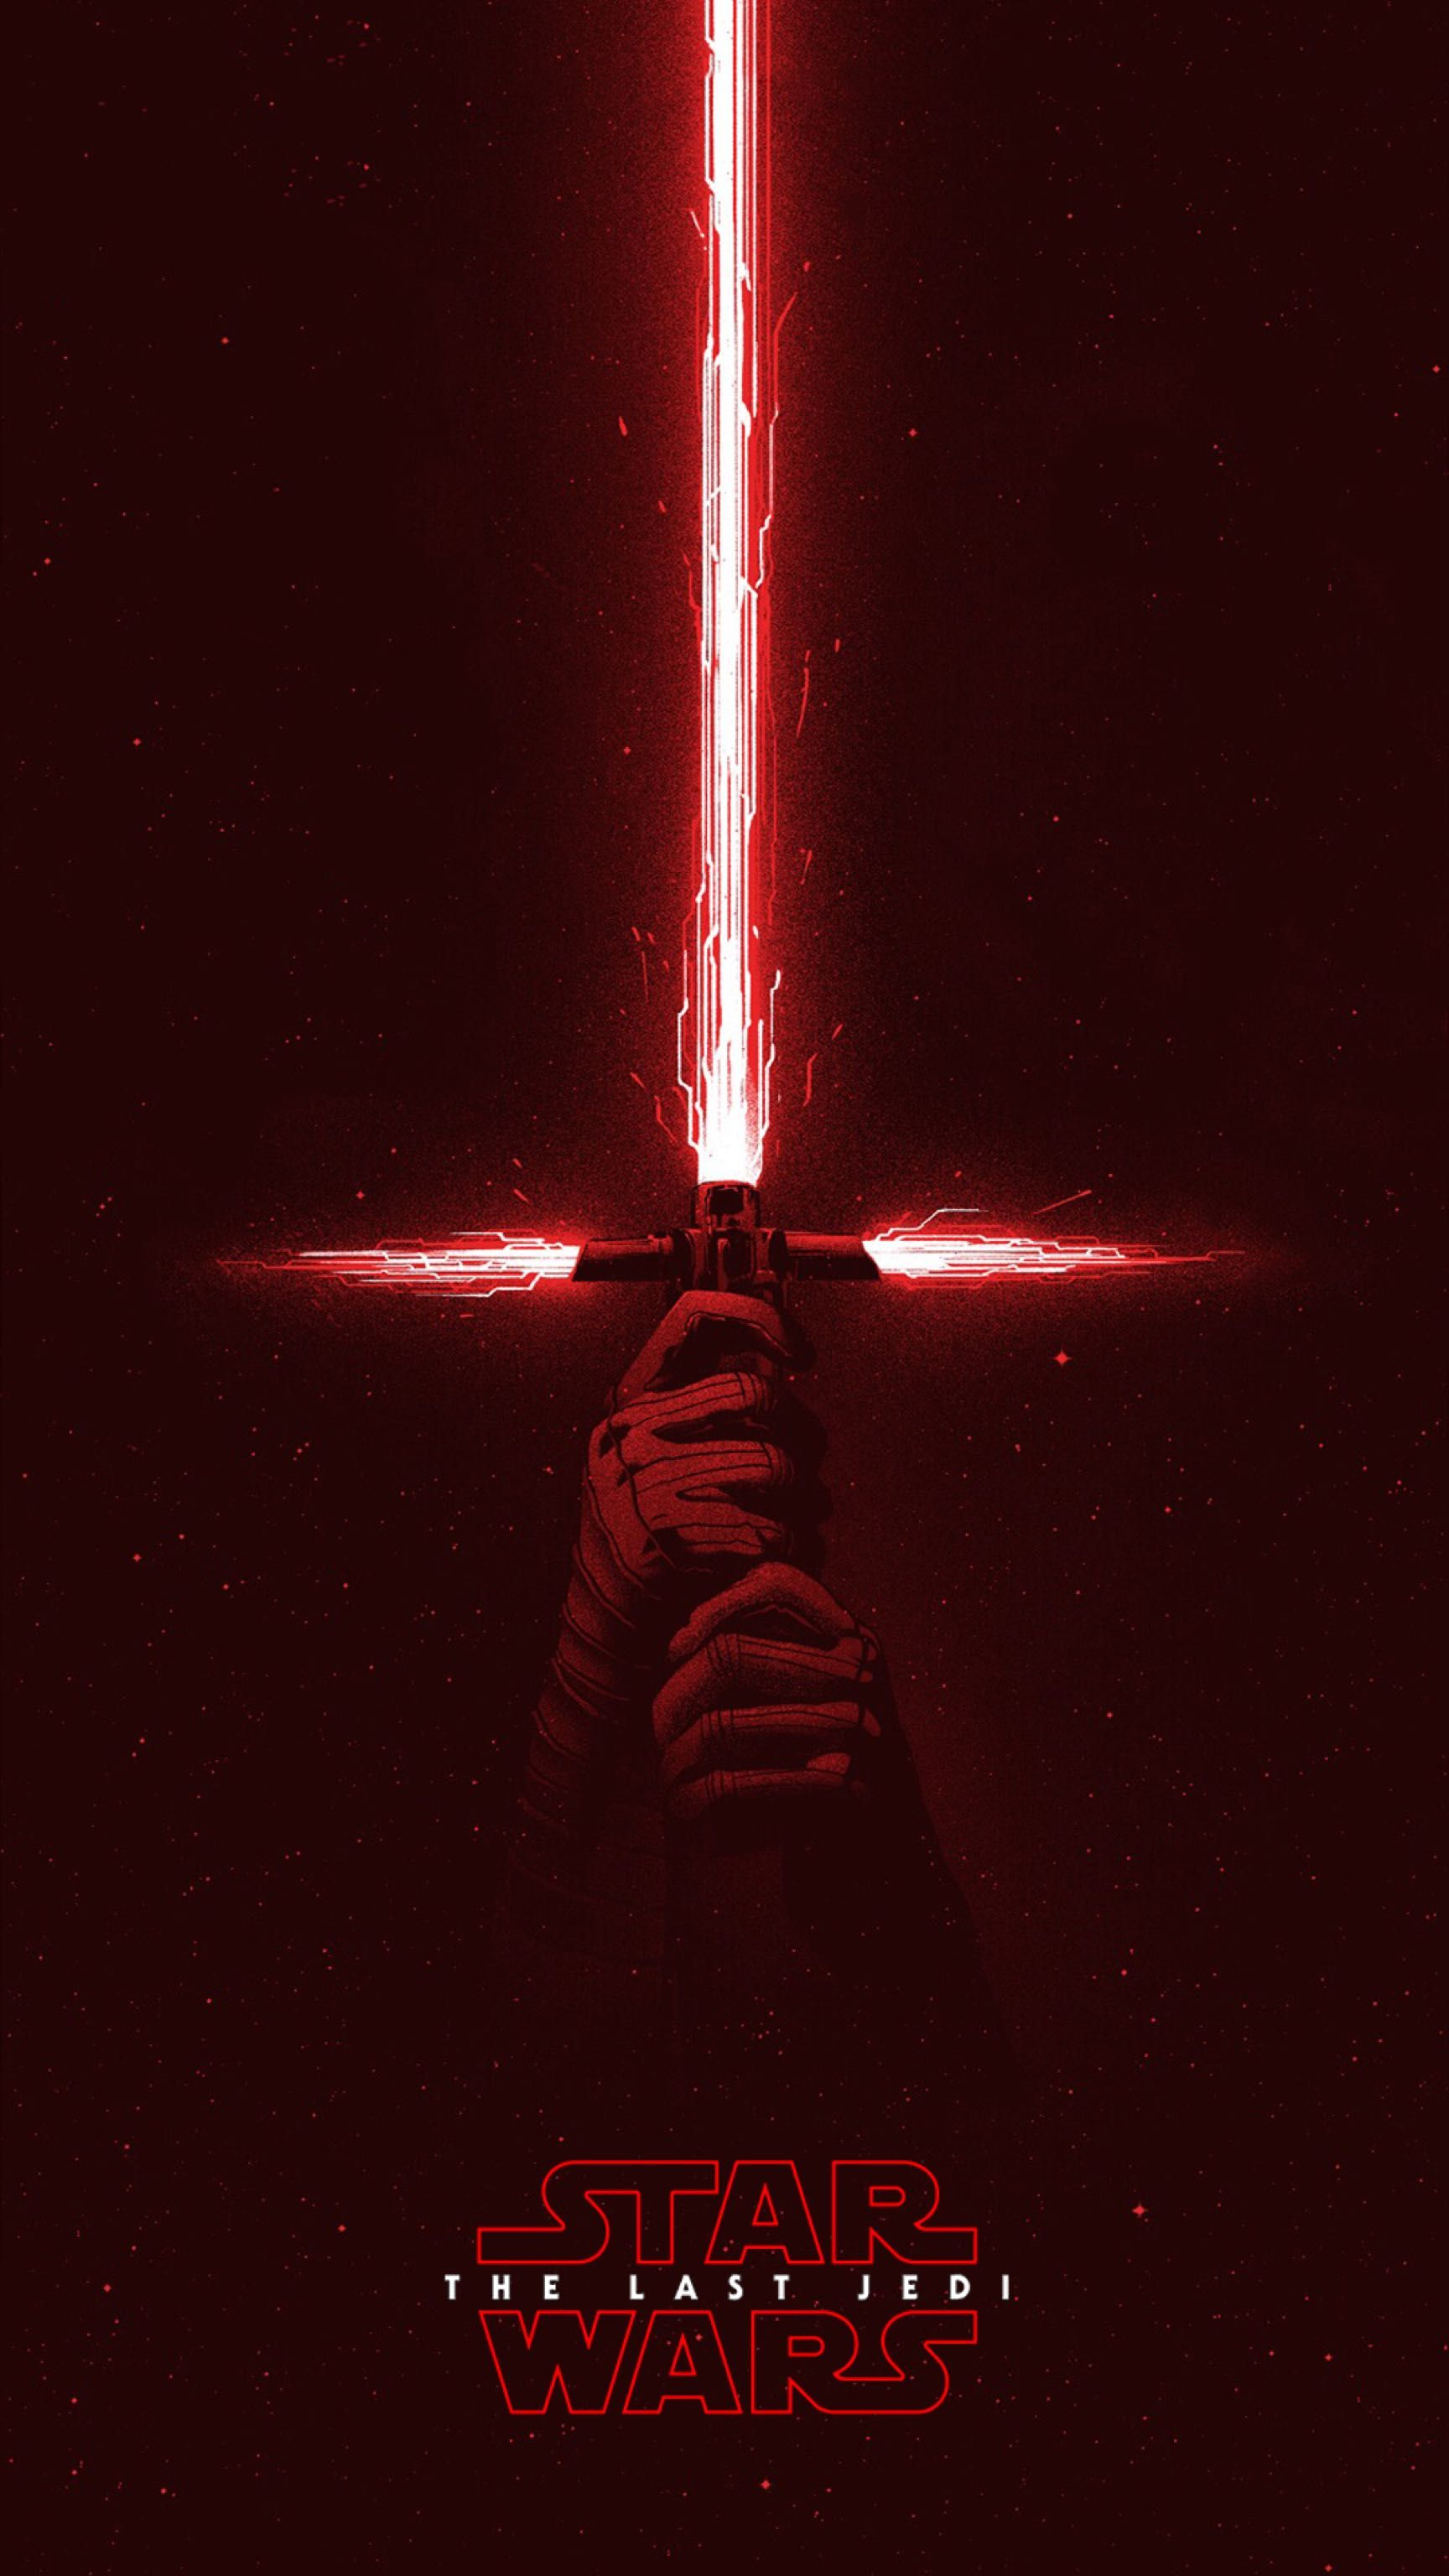 The Last Jedi Kylo Ren...heaven help us if he's the last